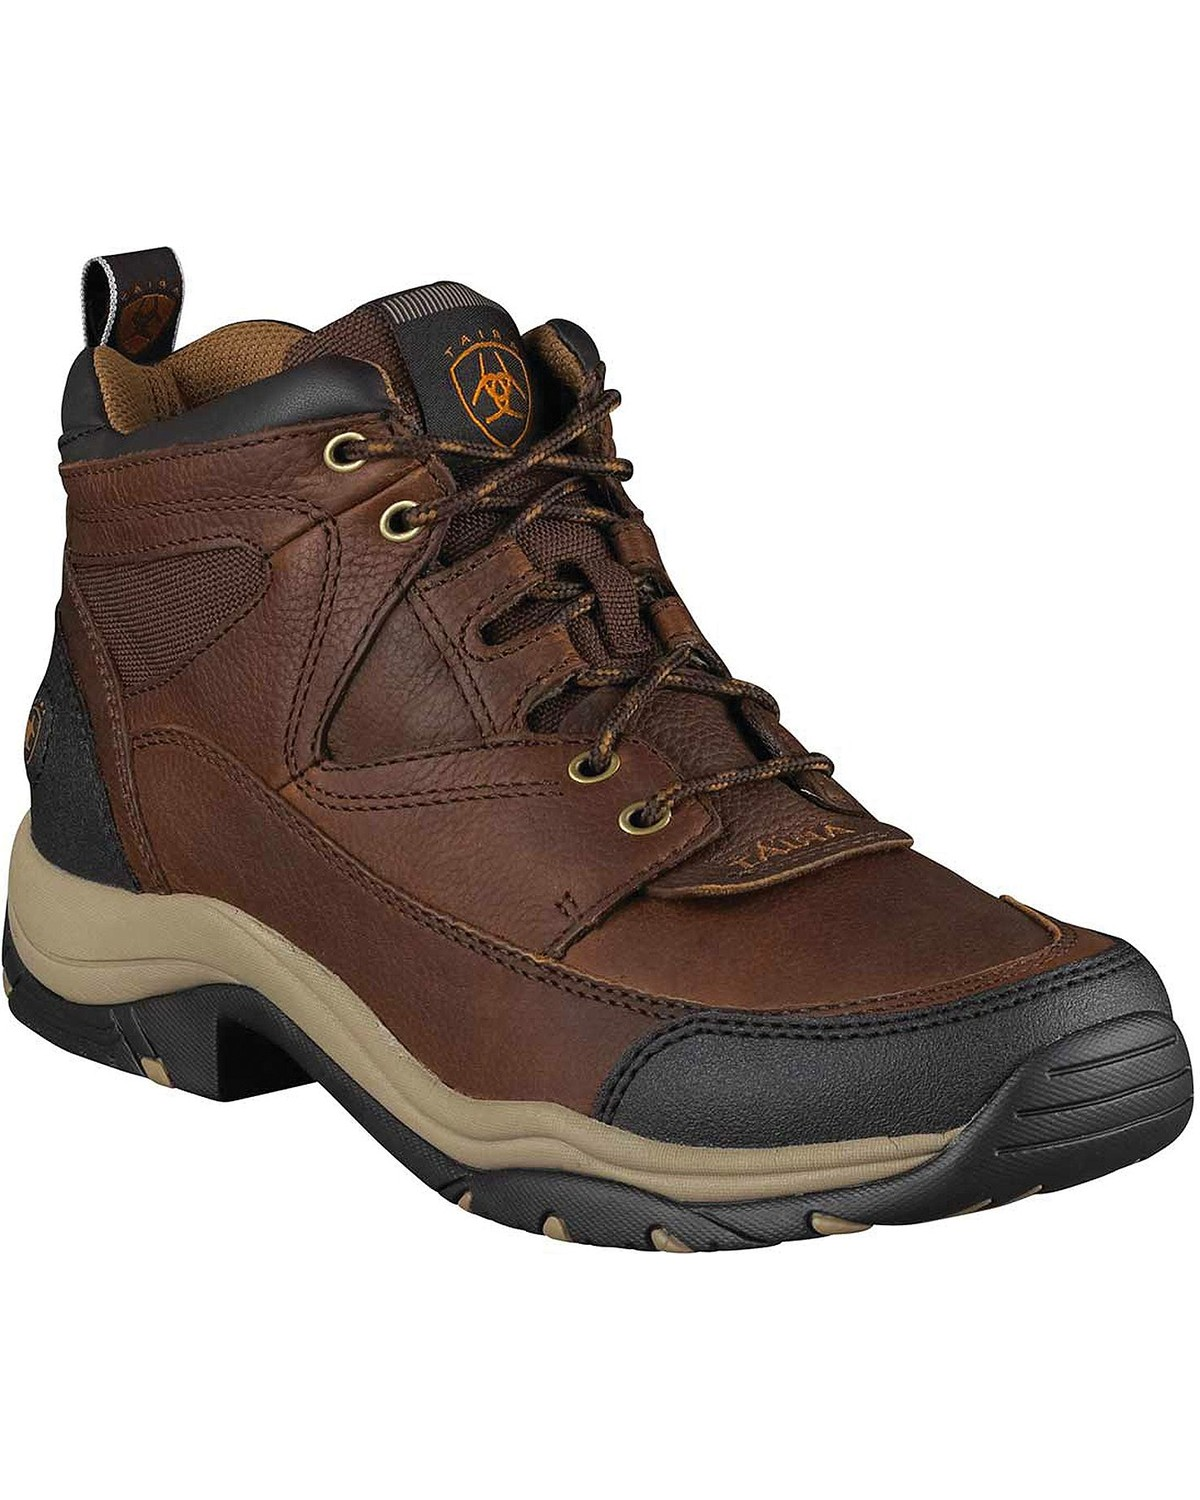 bb4a27cbe37d3 Ariat Men's Terrain Endurance Boots